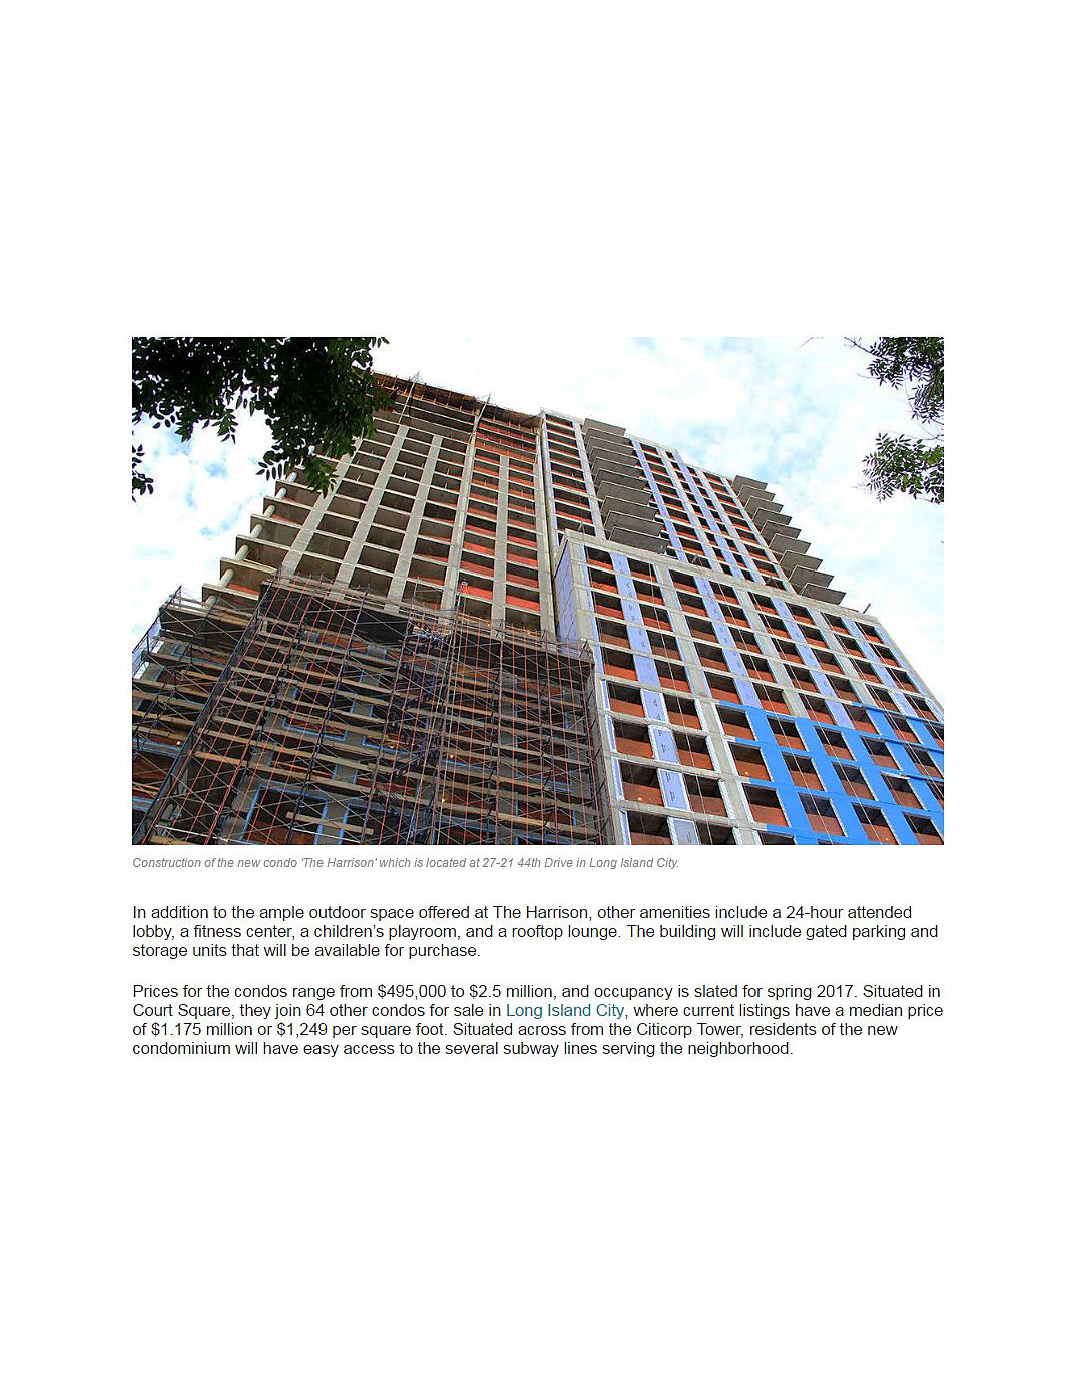 city-realty-sales-have-launched-at-long-island-citys-tallest-condominium-the-harrison-9-27-16-1_page_2